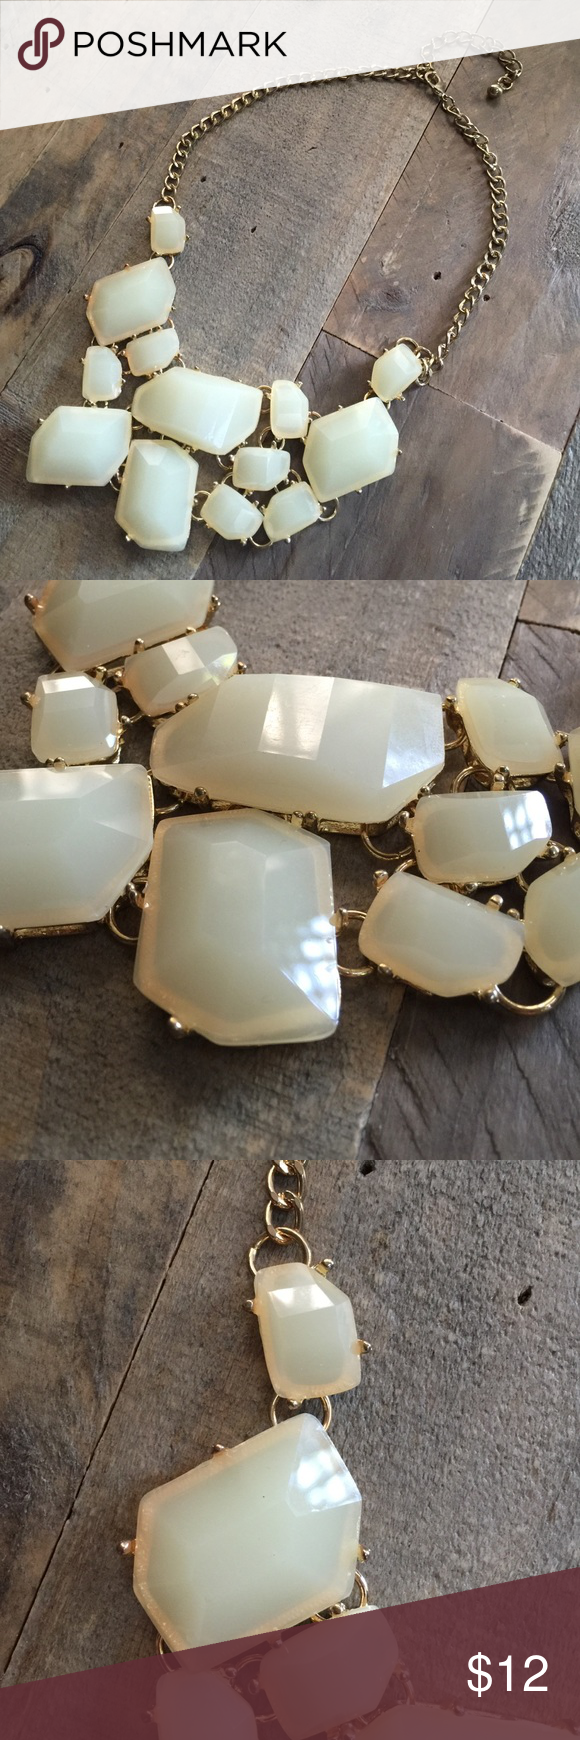 Statement Necklace Asymmetrical Antique White Stone design, faux gold link + clasp hardware Jewelry Necklaces